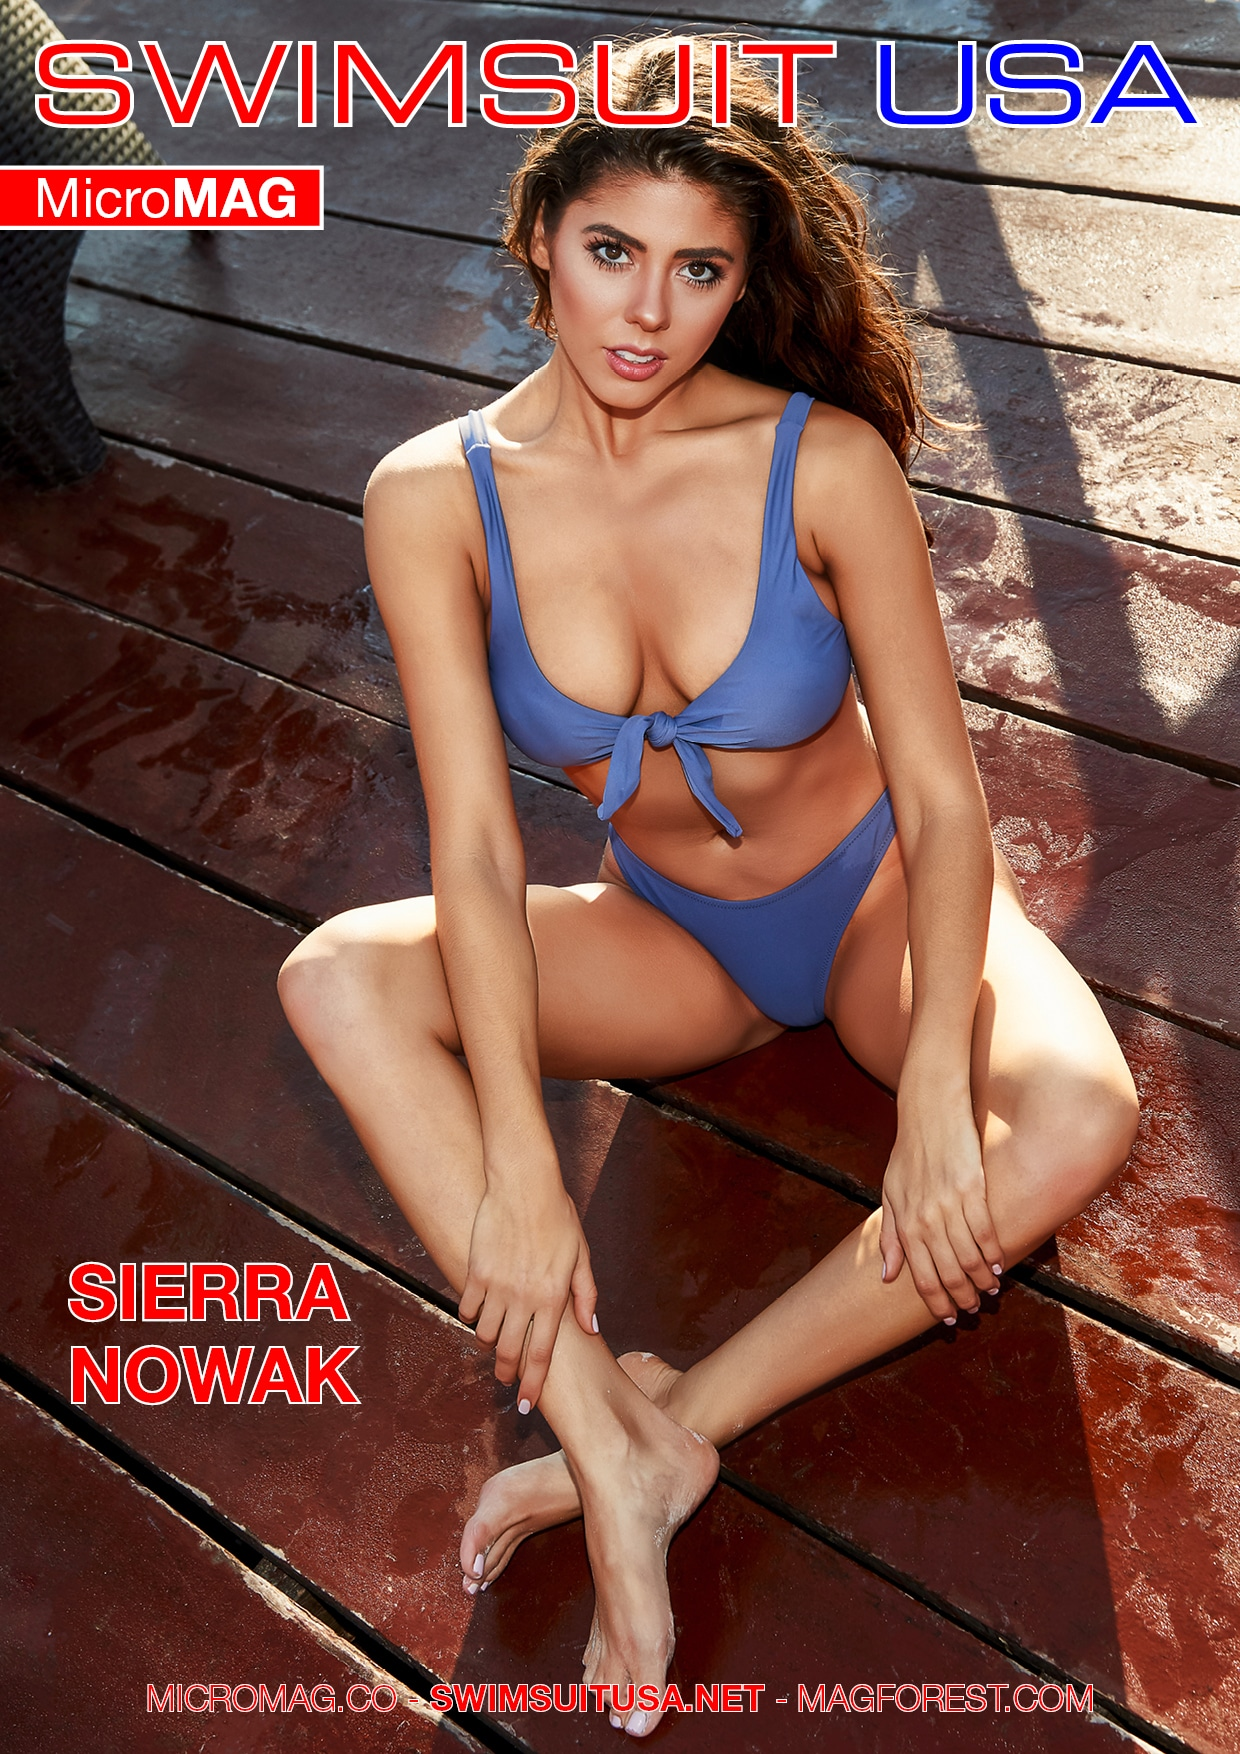 Swimsuit USA MicroMAG - Kourtney Nealy - Issue 2 4